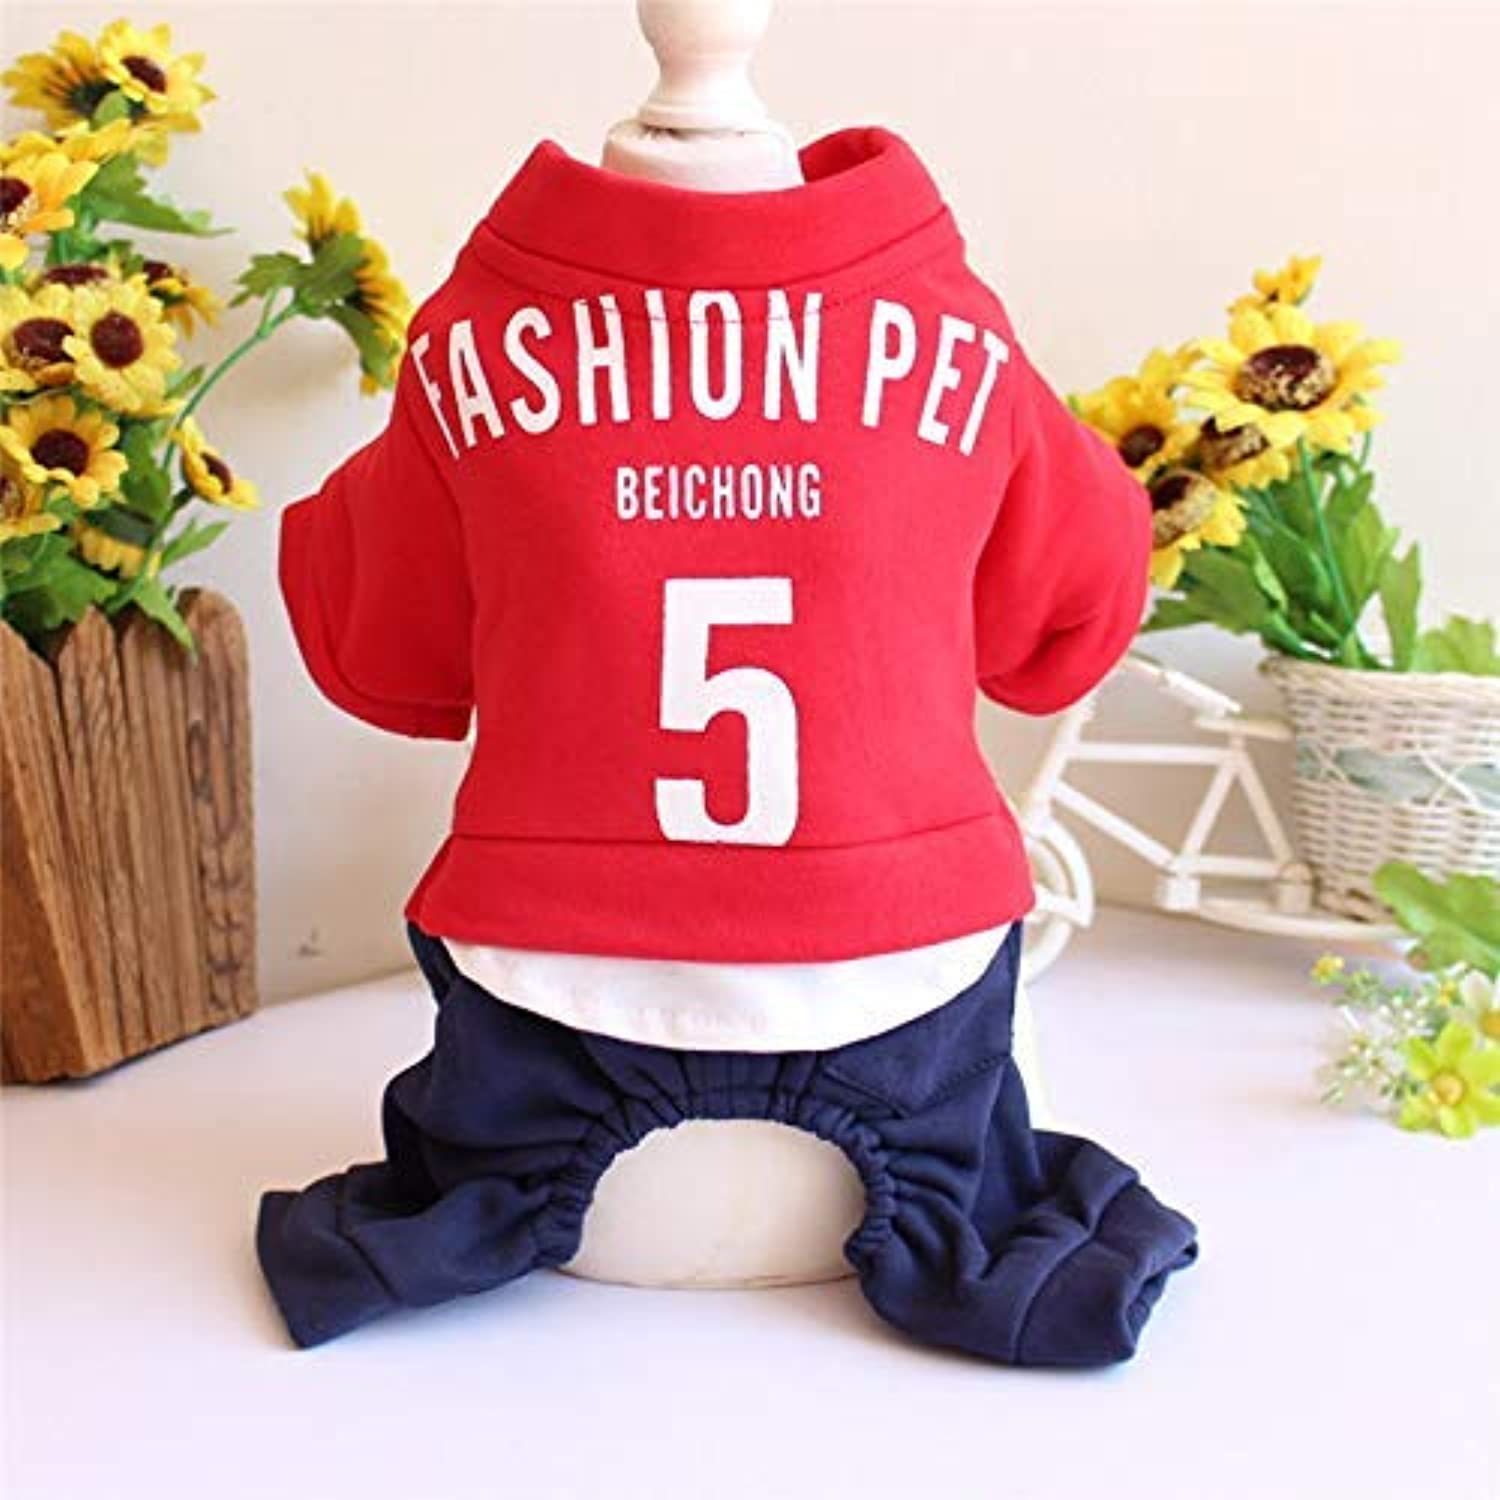 Party Pet Costume Pet Clothes, Spring, Summer, Autumn e Winter, Teddy, Dog Clothing, Stamped FourLegged (Colore: Rosso, Dimensione: XL) Pet Uniform (Colore: Rosso, Dimensione: XL)